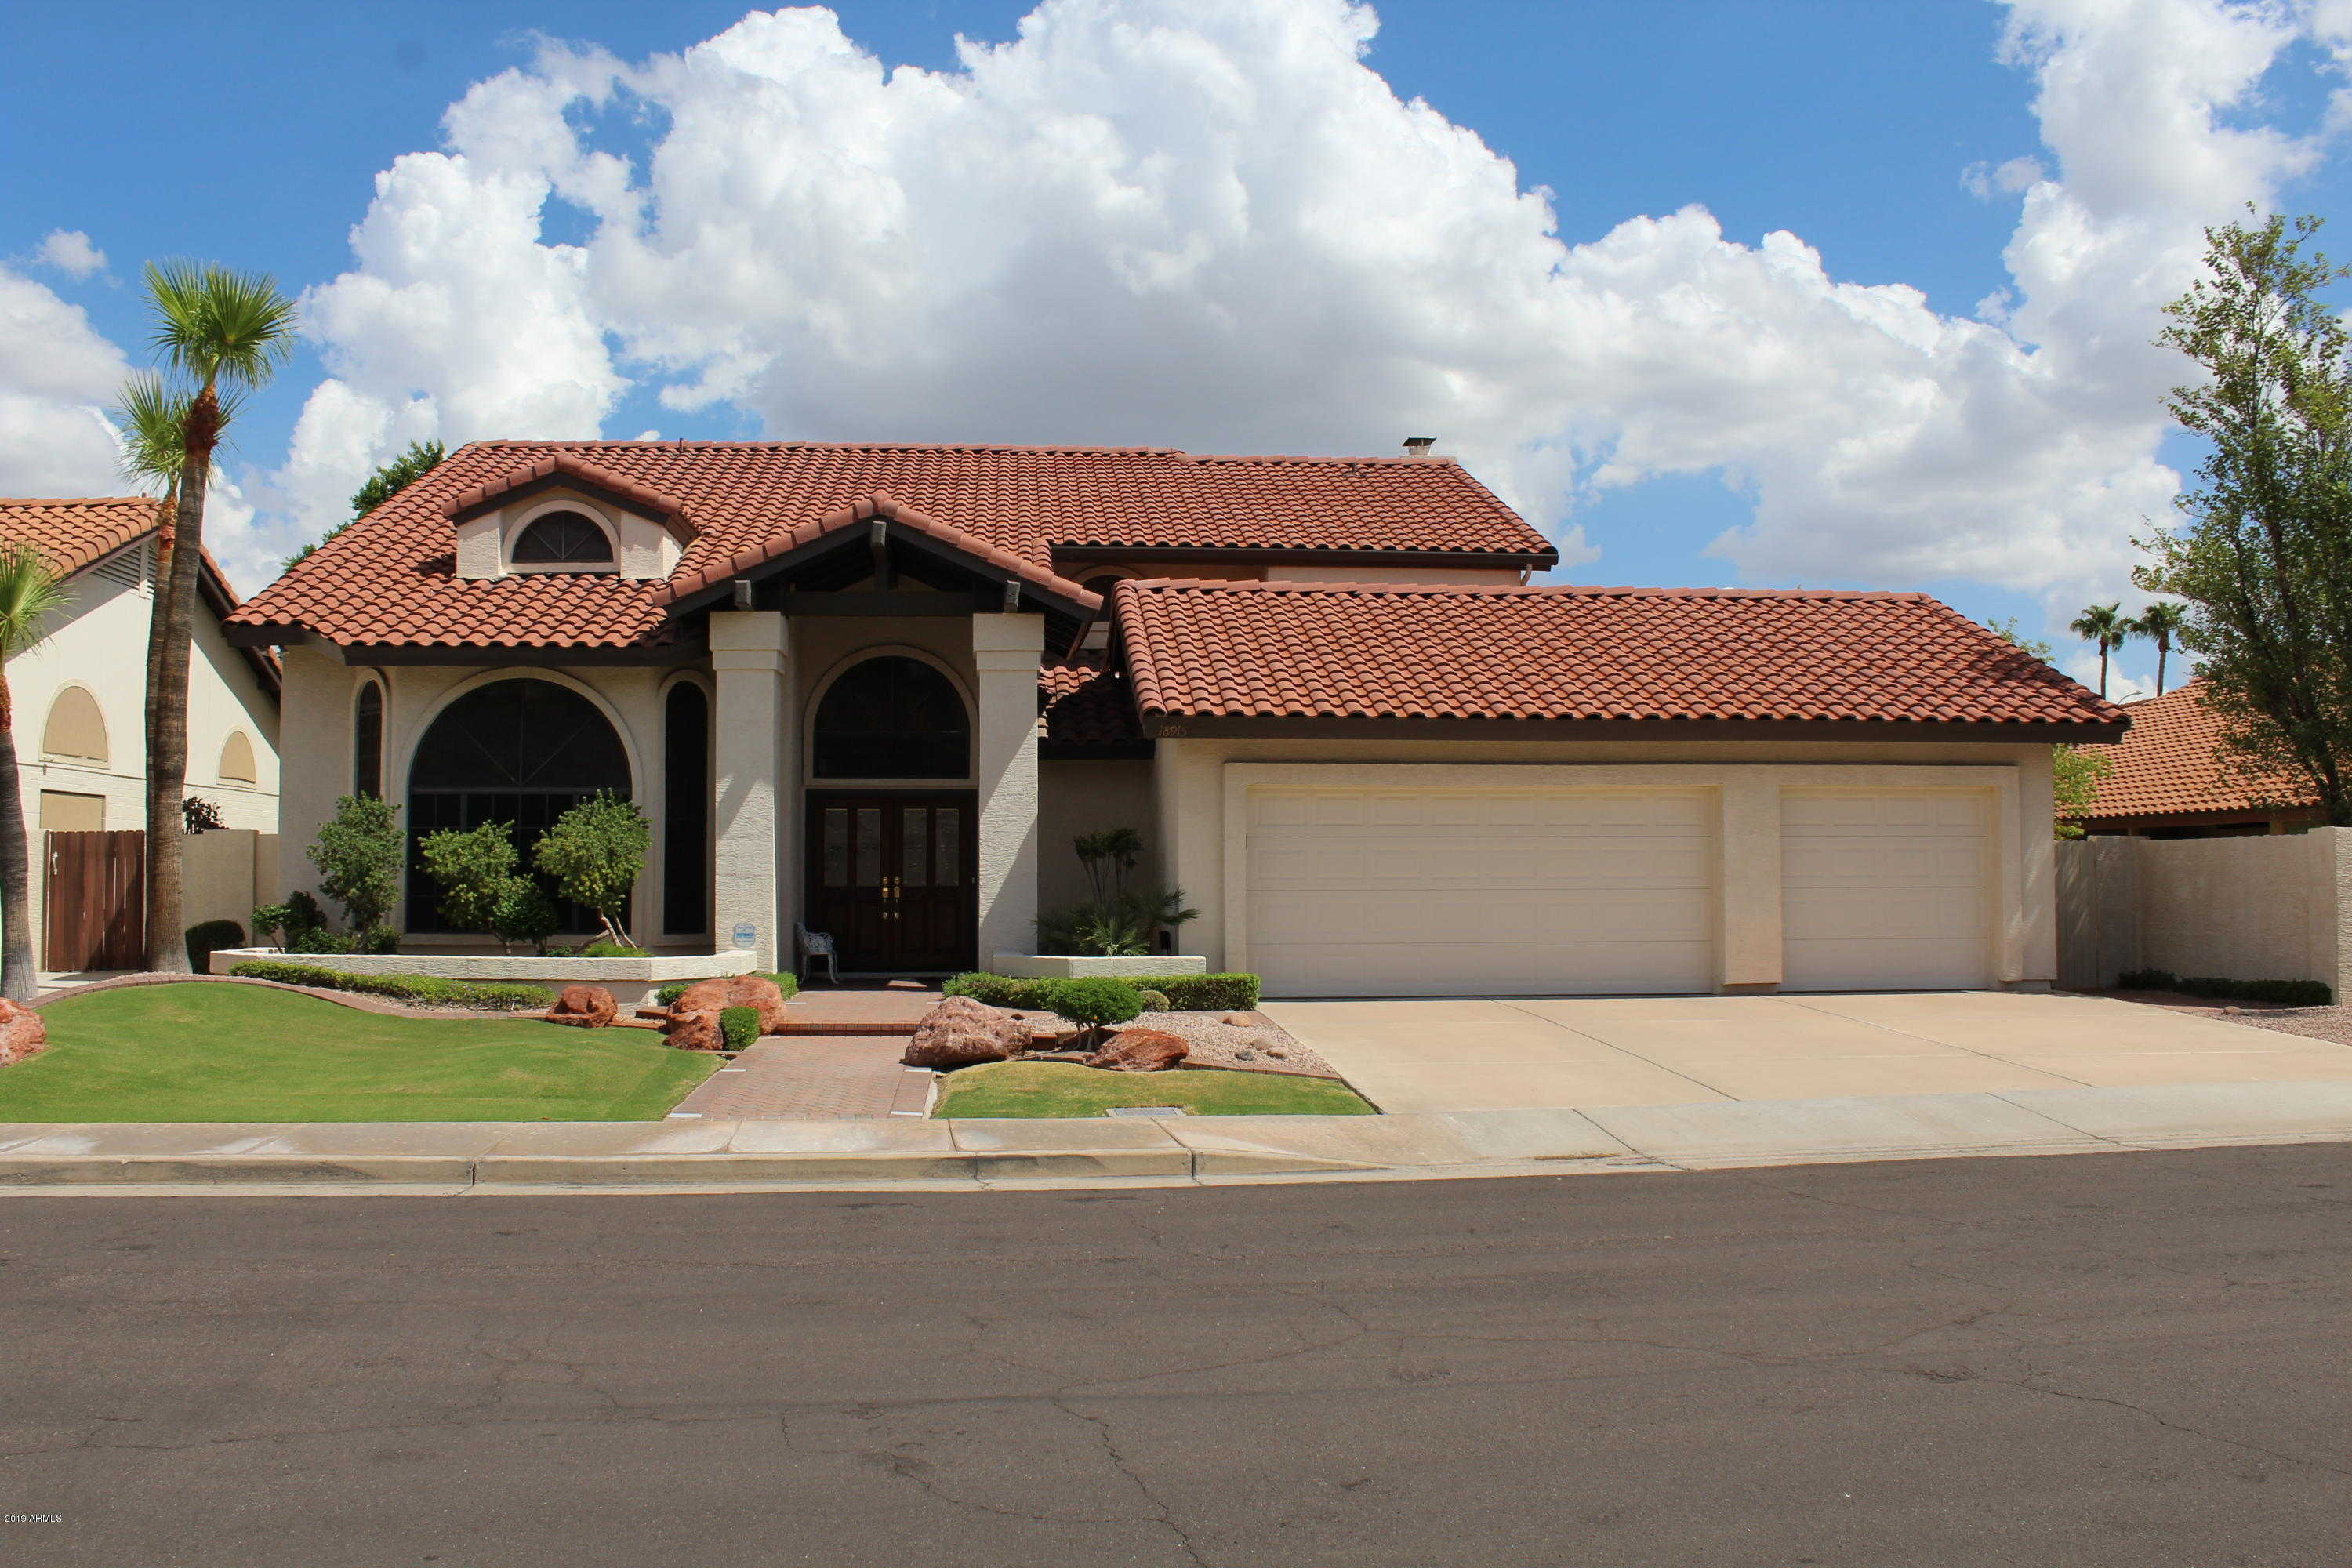 $379,000 - 4Br/3Ba - Home for Sale in Arrowhead Ranch 4 Lt 1-132 Tr A B, Glendale